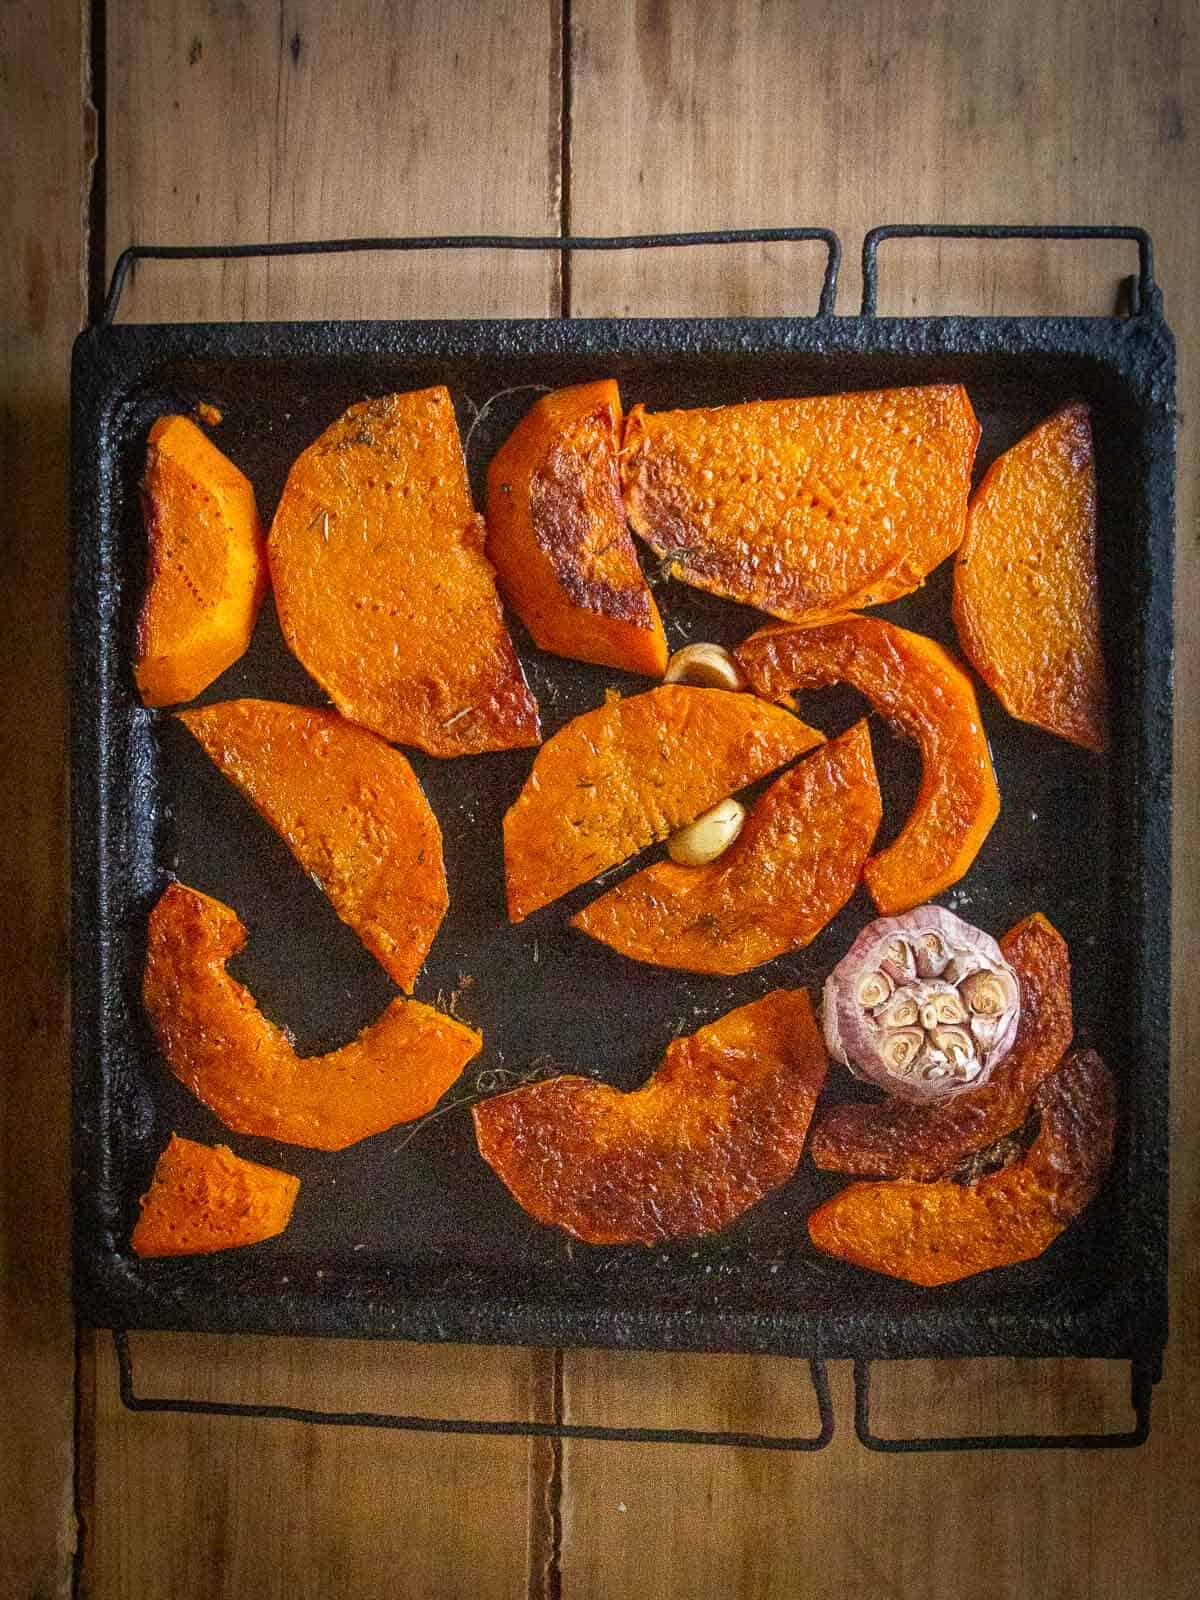 roasted butternut squash in tray